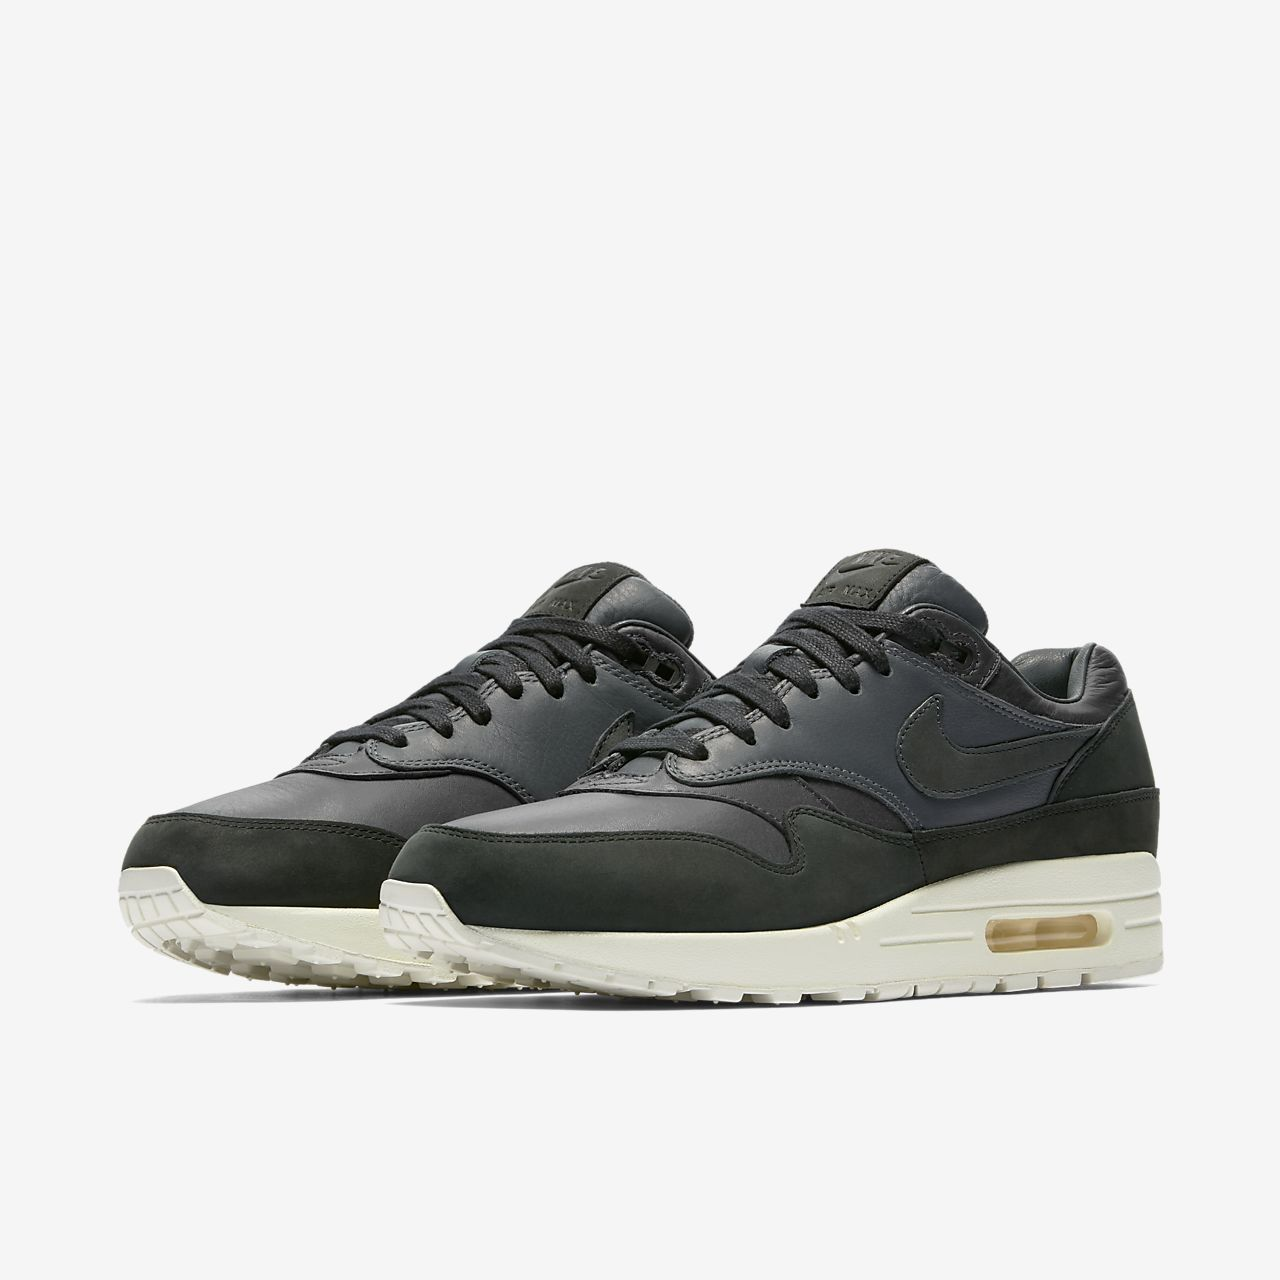 super popular b00d9 f80c4 ... Calzado para hombre Nike Air Max 1 Pinnacle